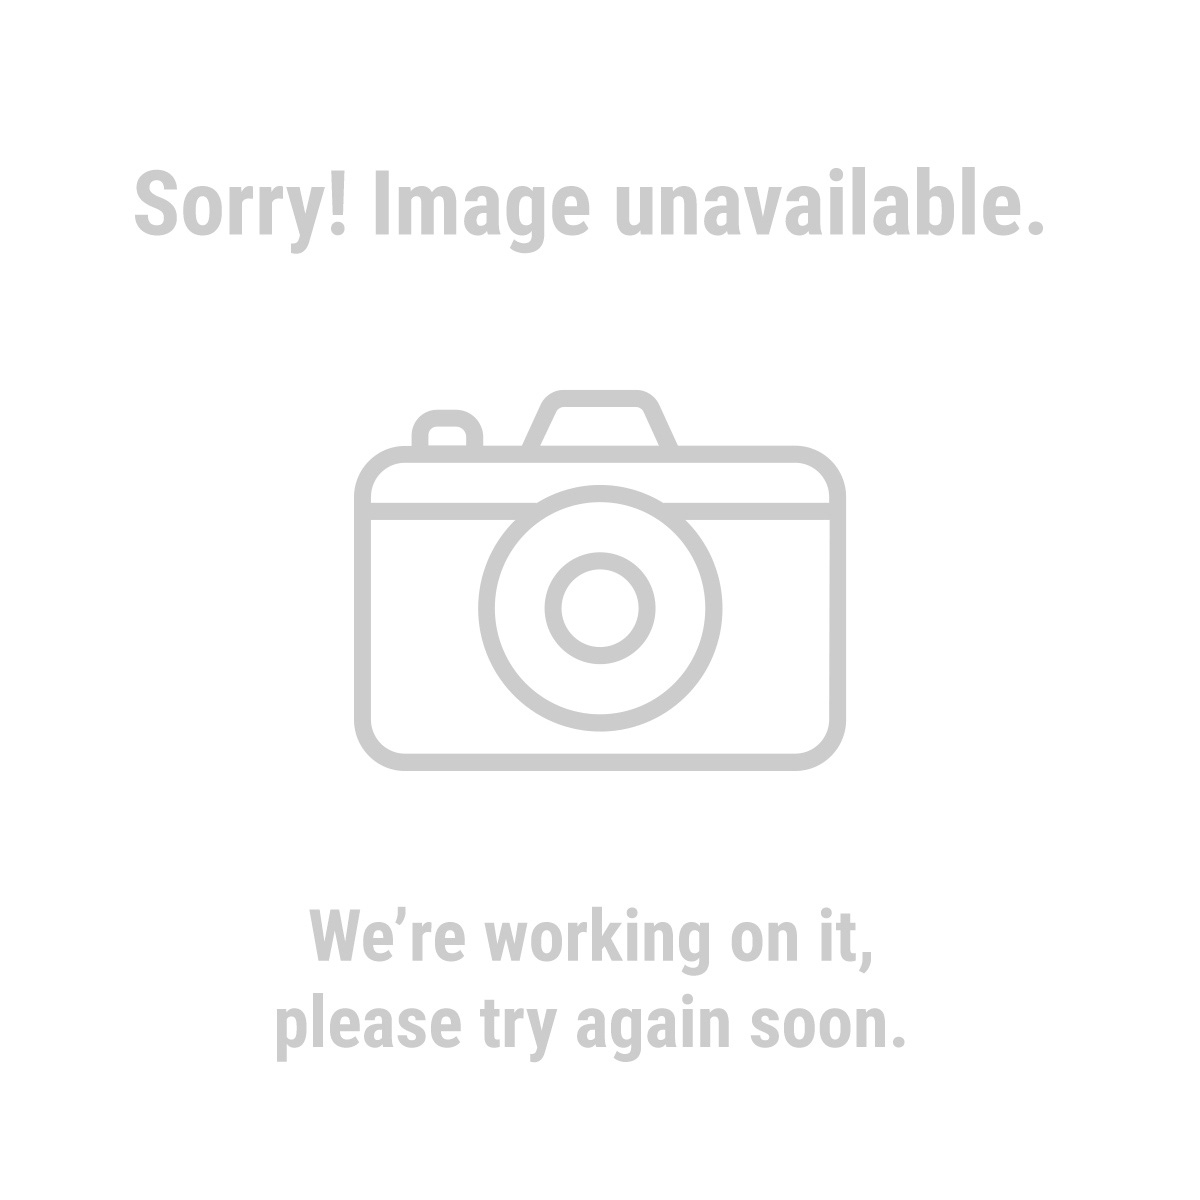 HFT® 62289 Large Tilt Flat Panel TV Mount